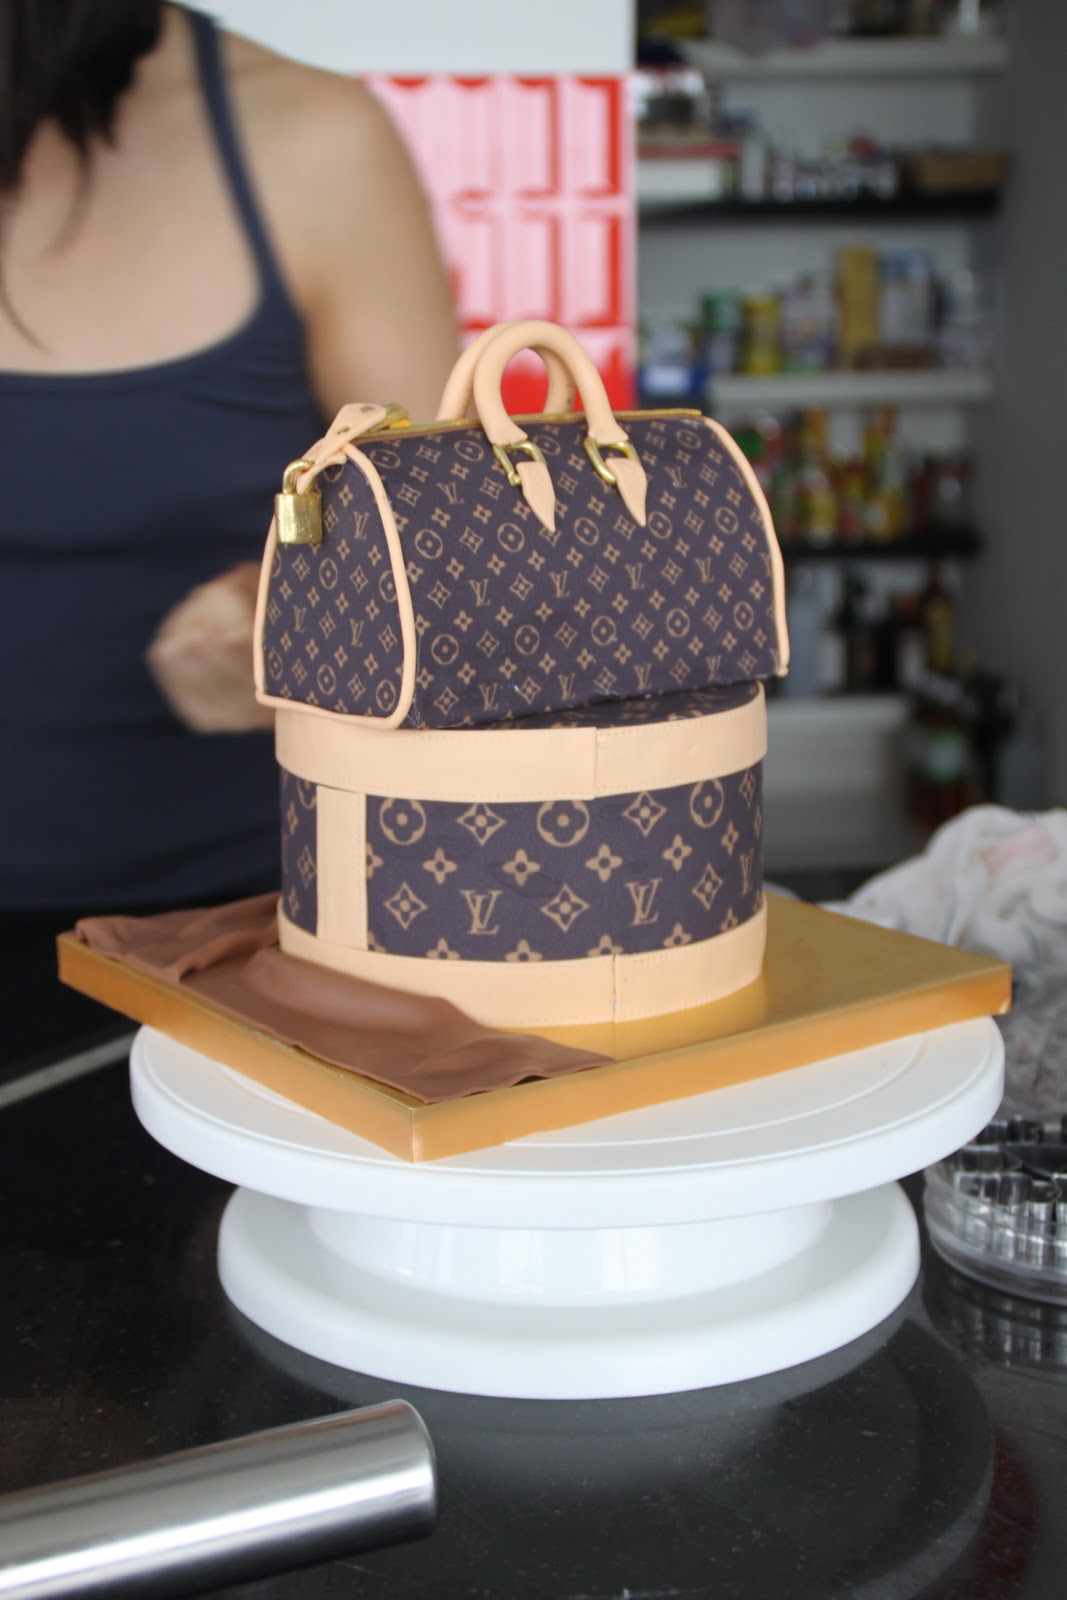 Celebrate With Cake Louis Vuitton Bag Cake